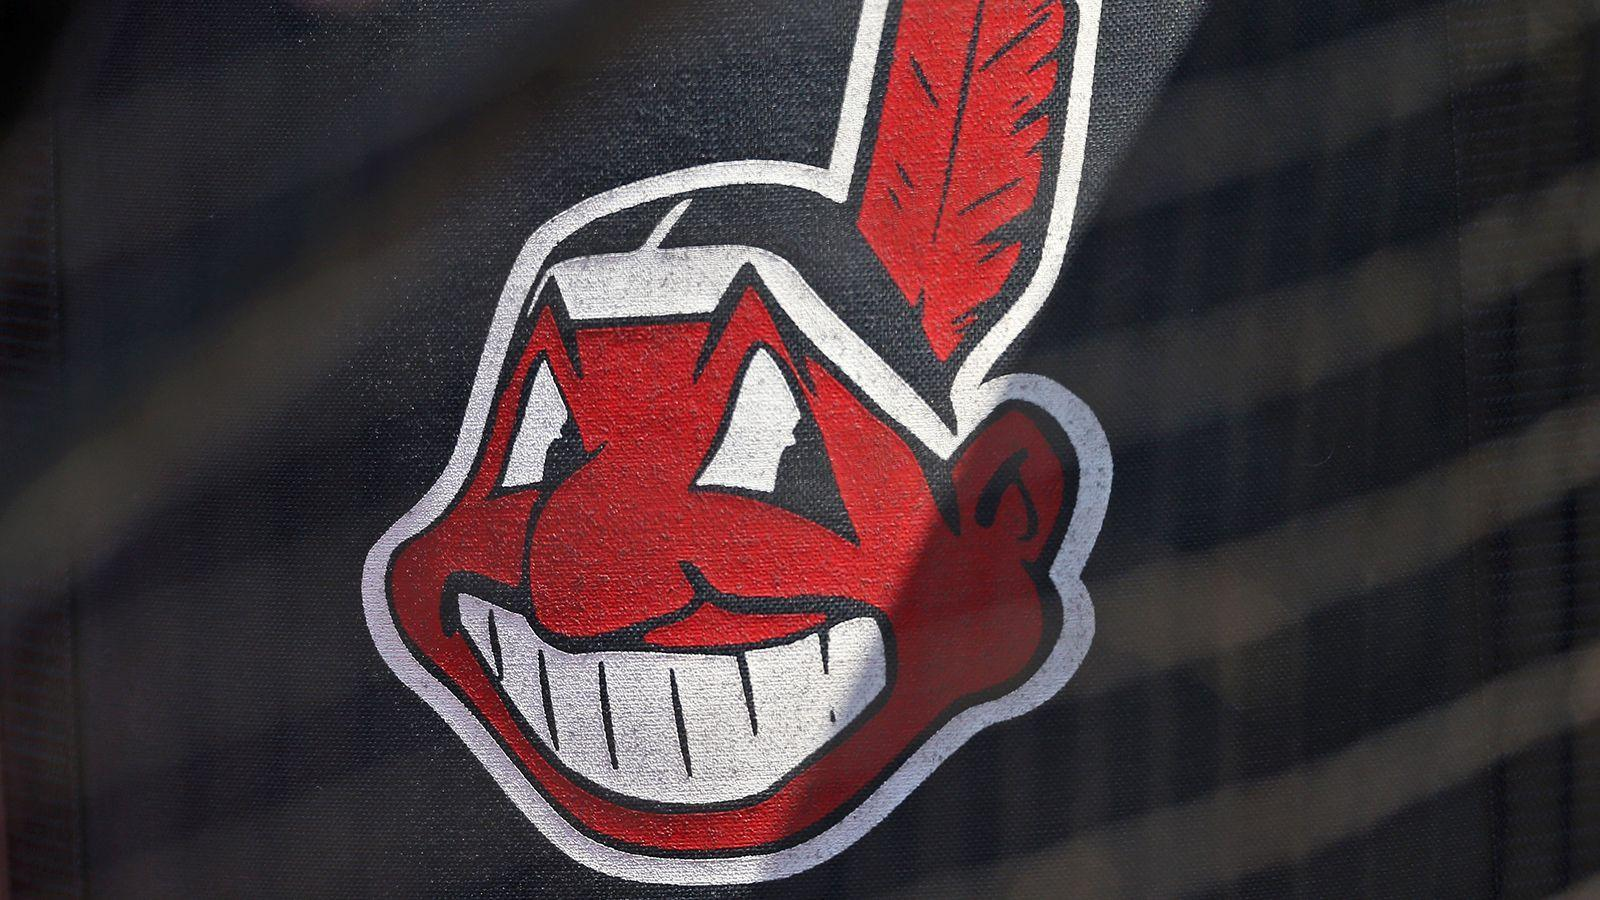 Cleveland indians logo wallpaper – abzx